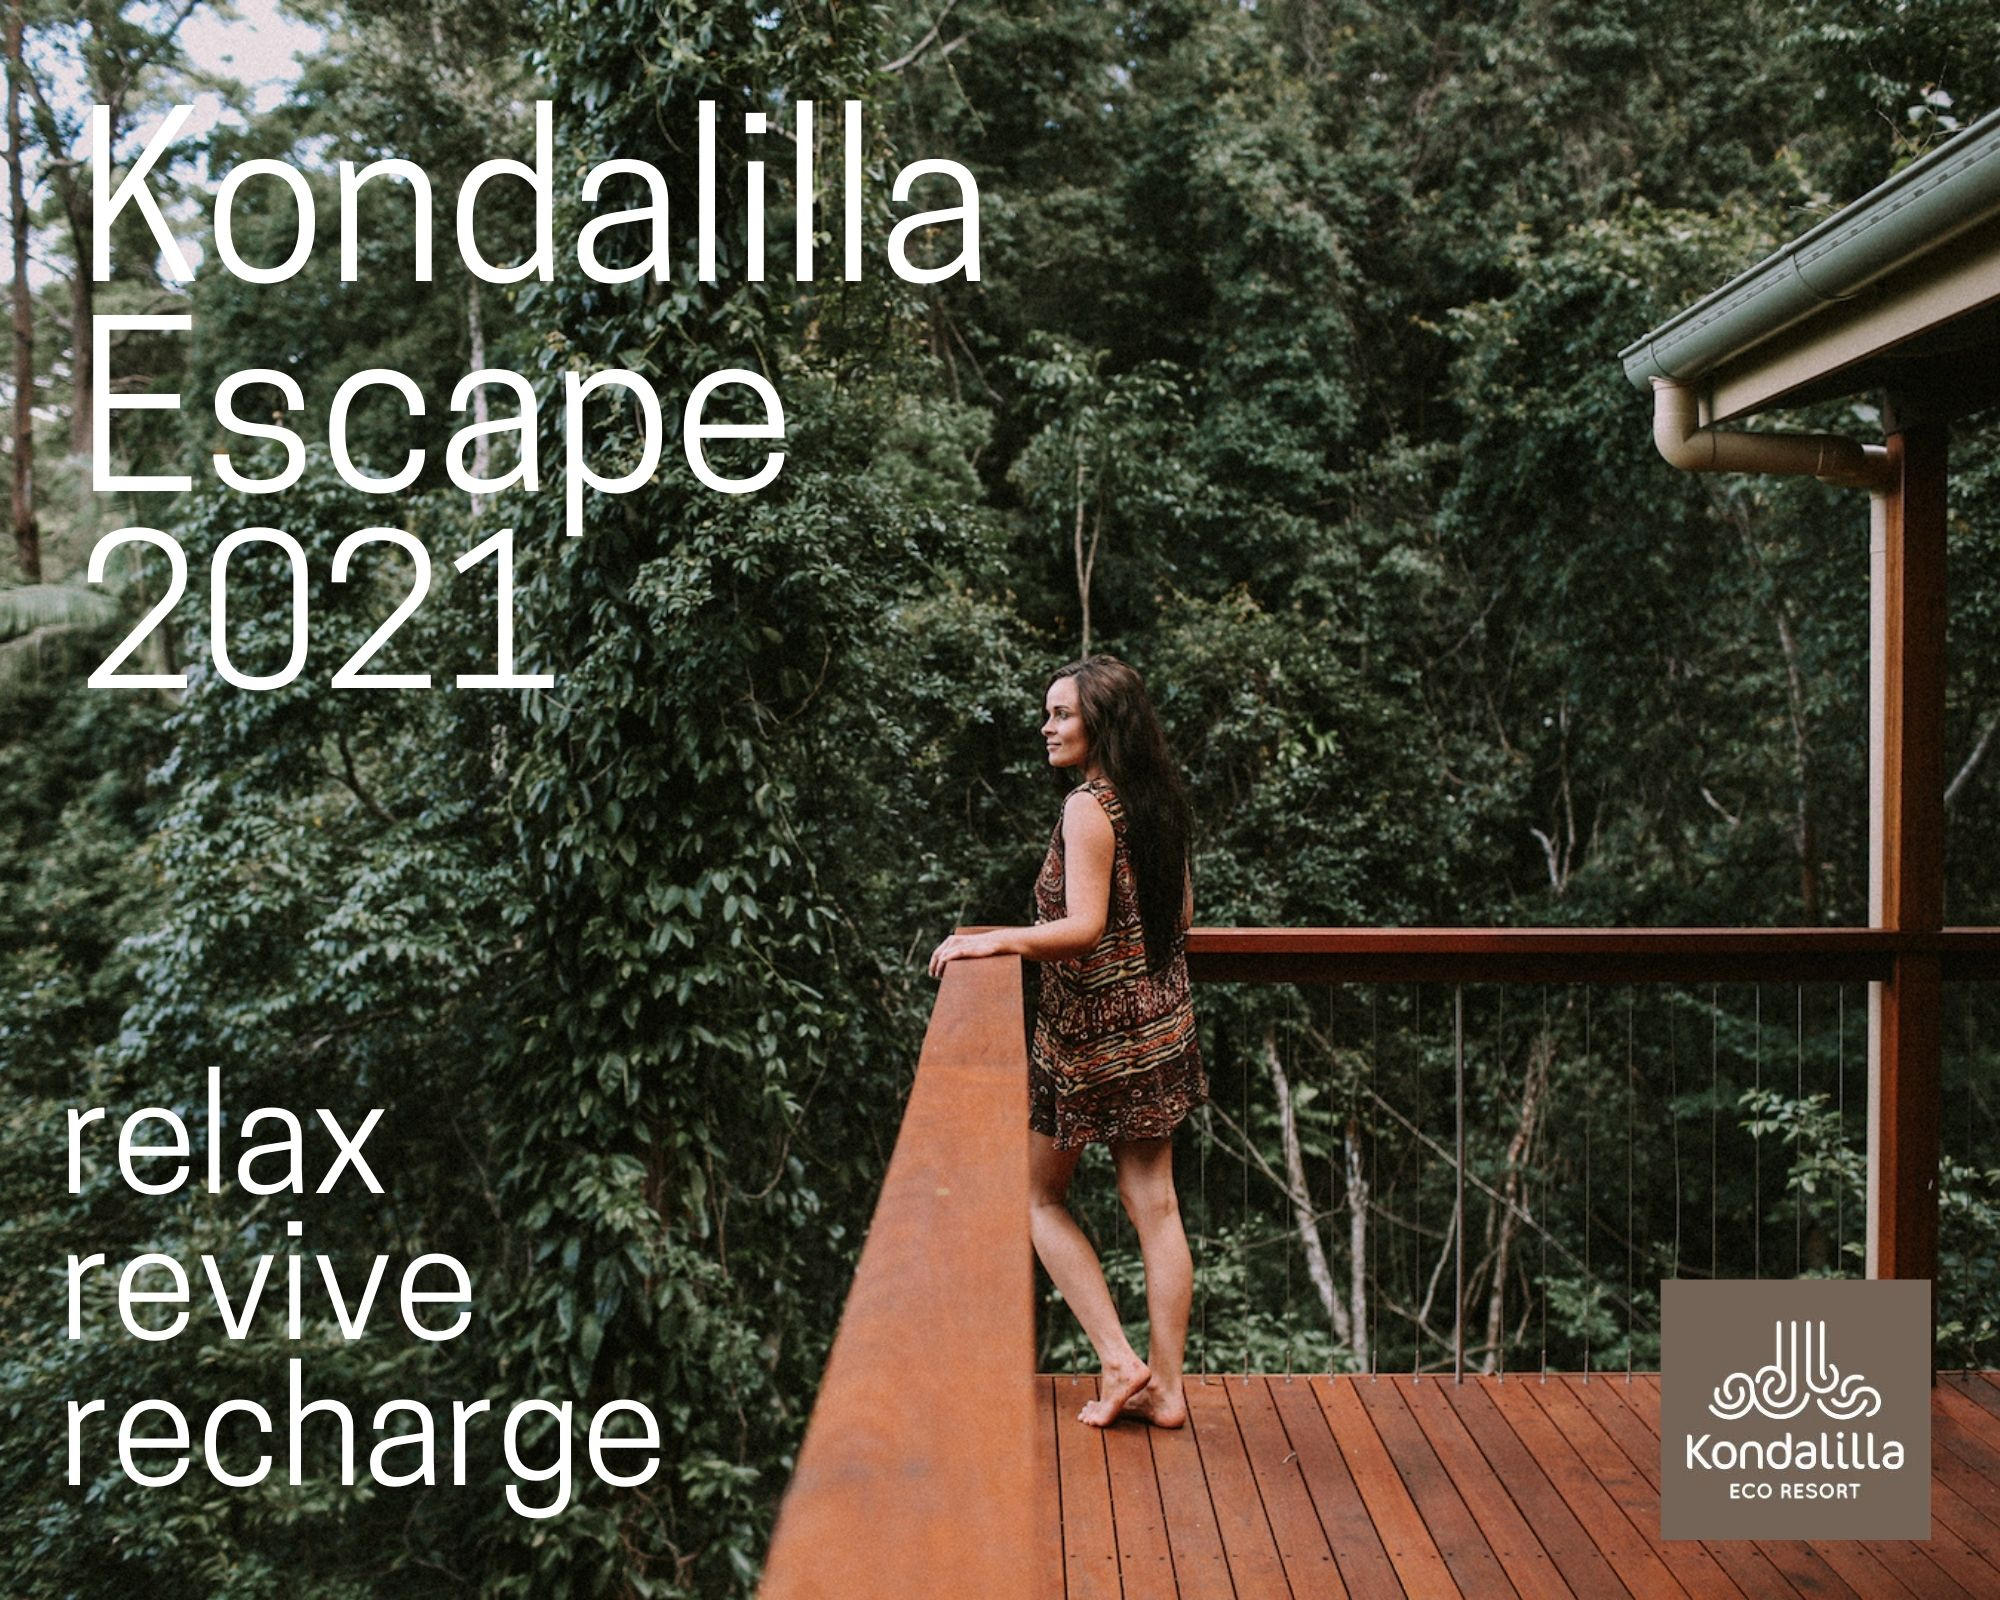 Kondalilla Escape Package 2021 (1)